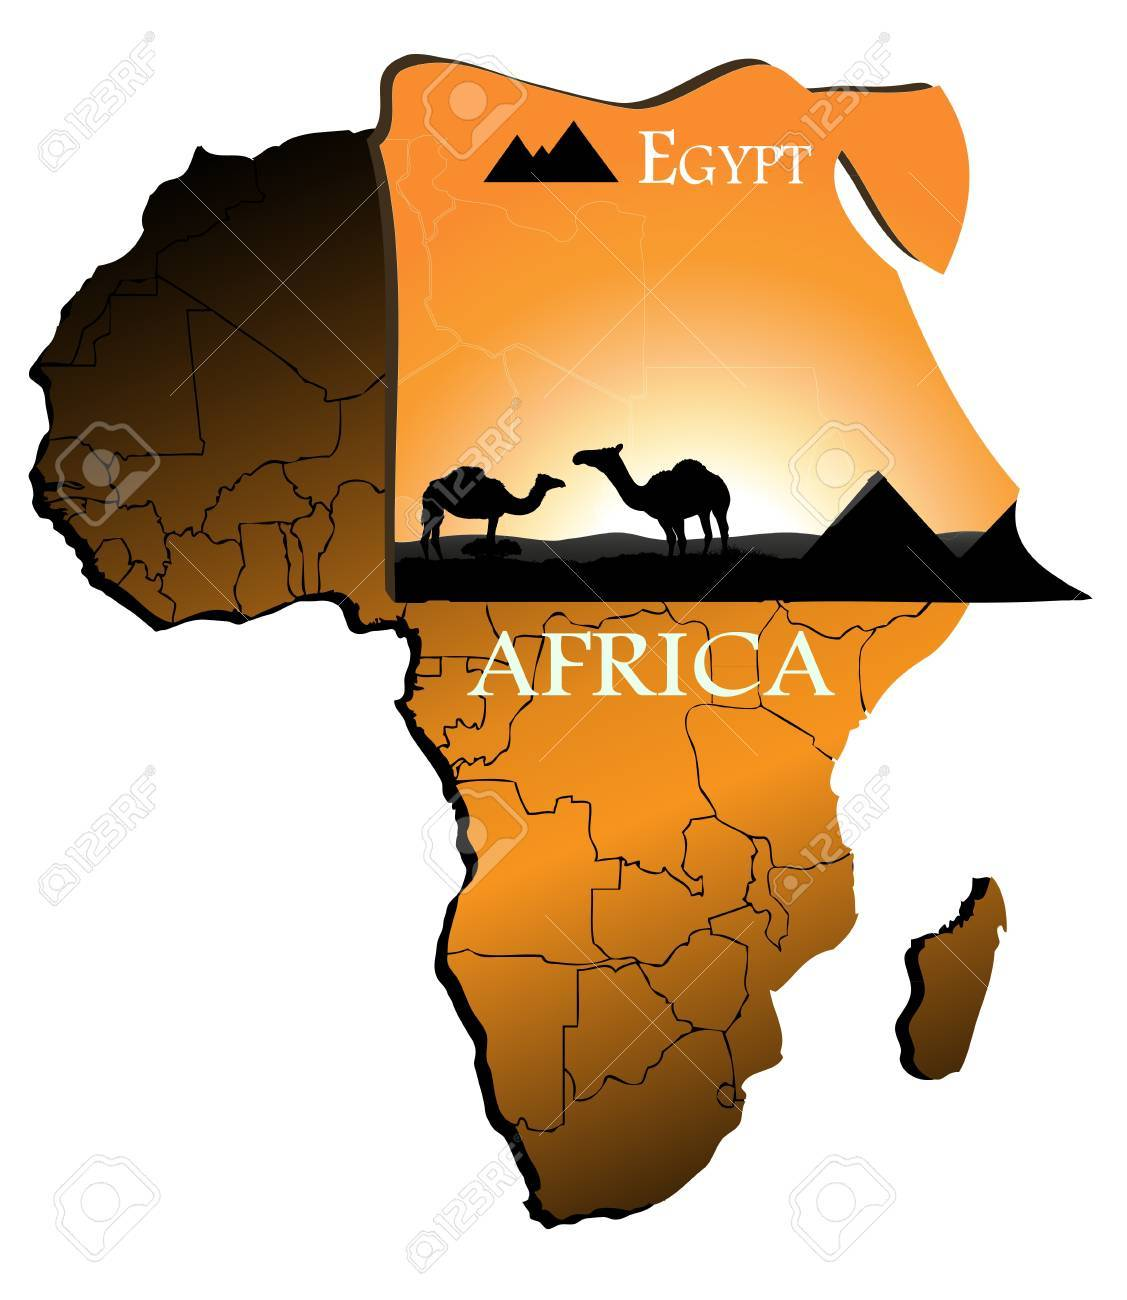 Egypt on the map of Africa Stock Vector - 18765556